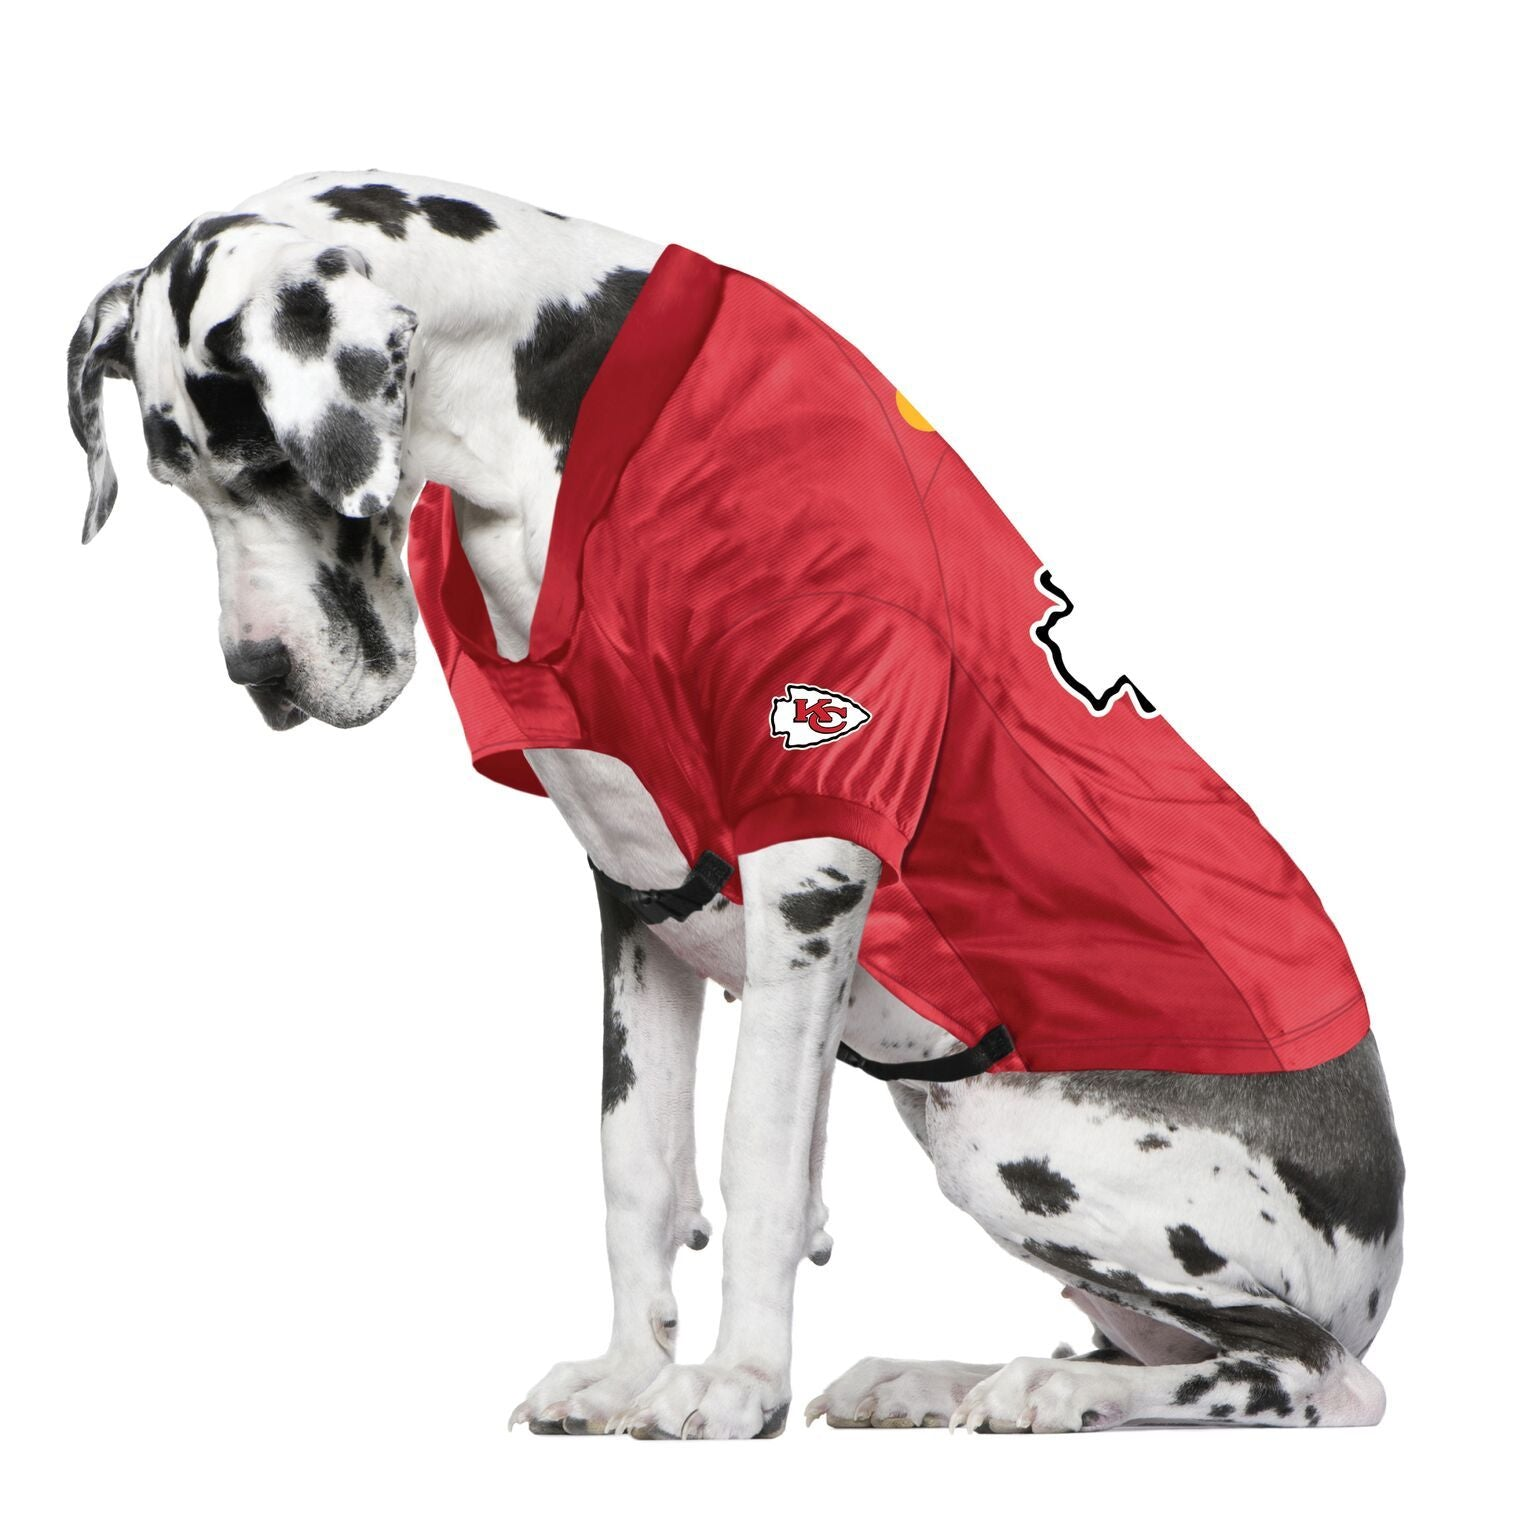 Chiefs Fan Jersey For Your Dog